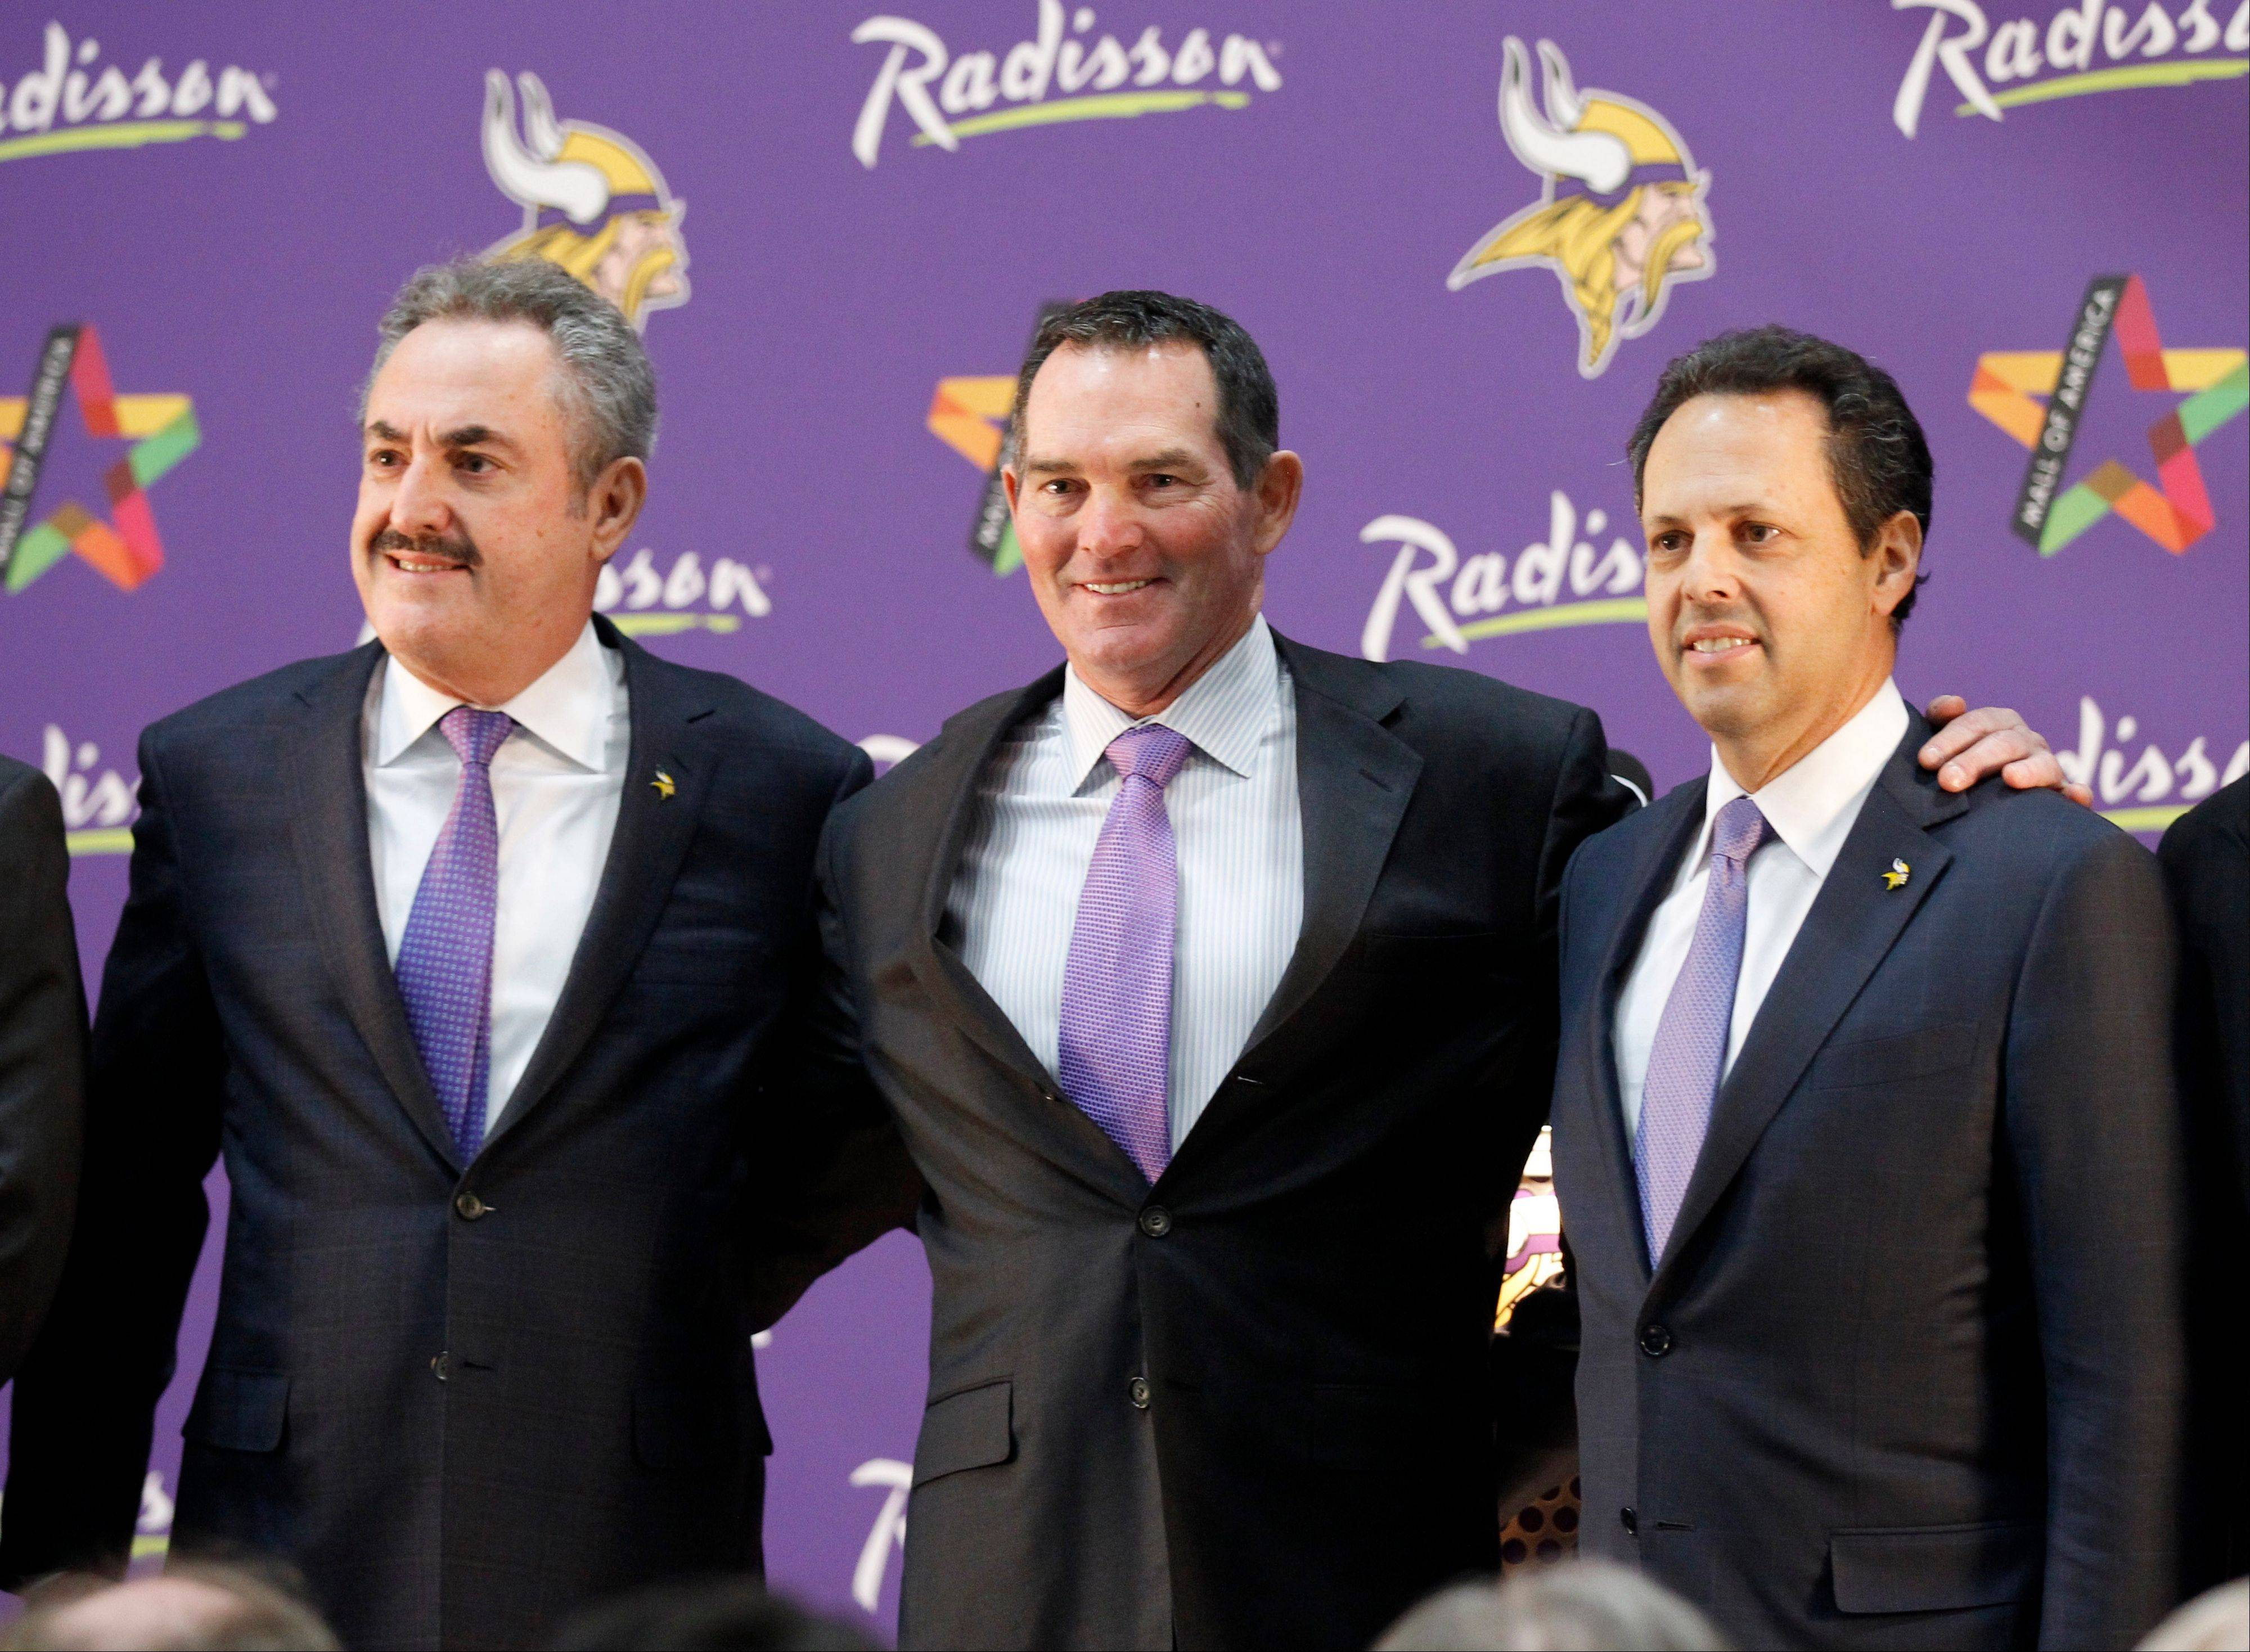 New Minnesota Vikings head coach Mike Zimmer, center, poses with team owner Zygi Wilf, left, and Mark Wilf, right, during an NFL football media availability at Winter Park in Eden Prairie, Minn., Friday, Jan. 17, 2014. Zimmer is the ninth head coach in the Vikings' franchise history.